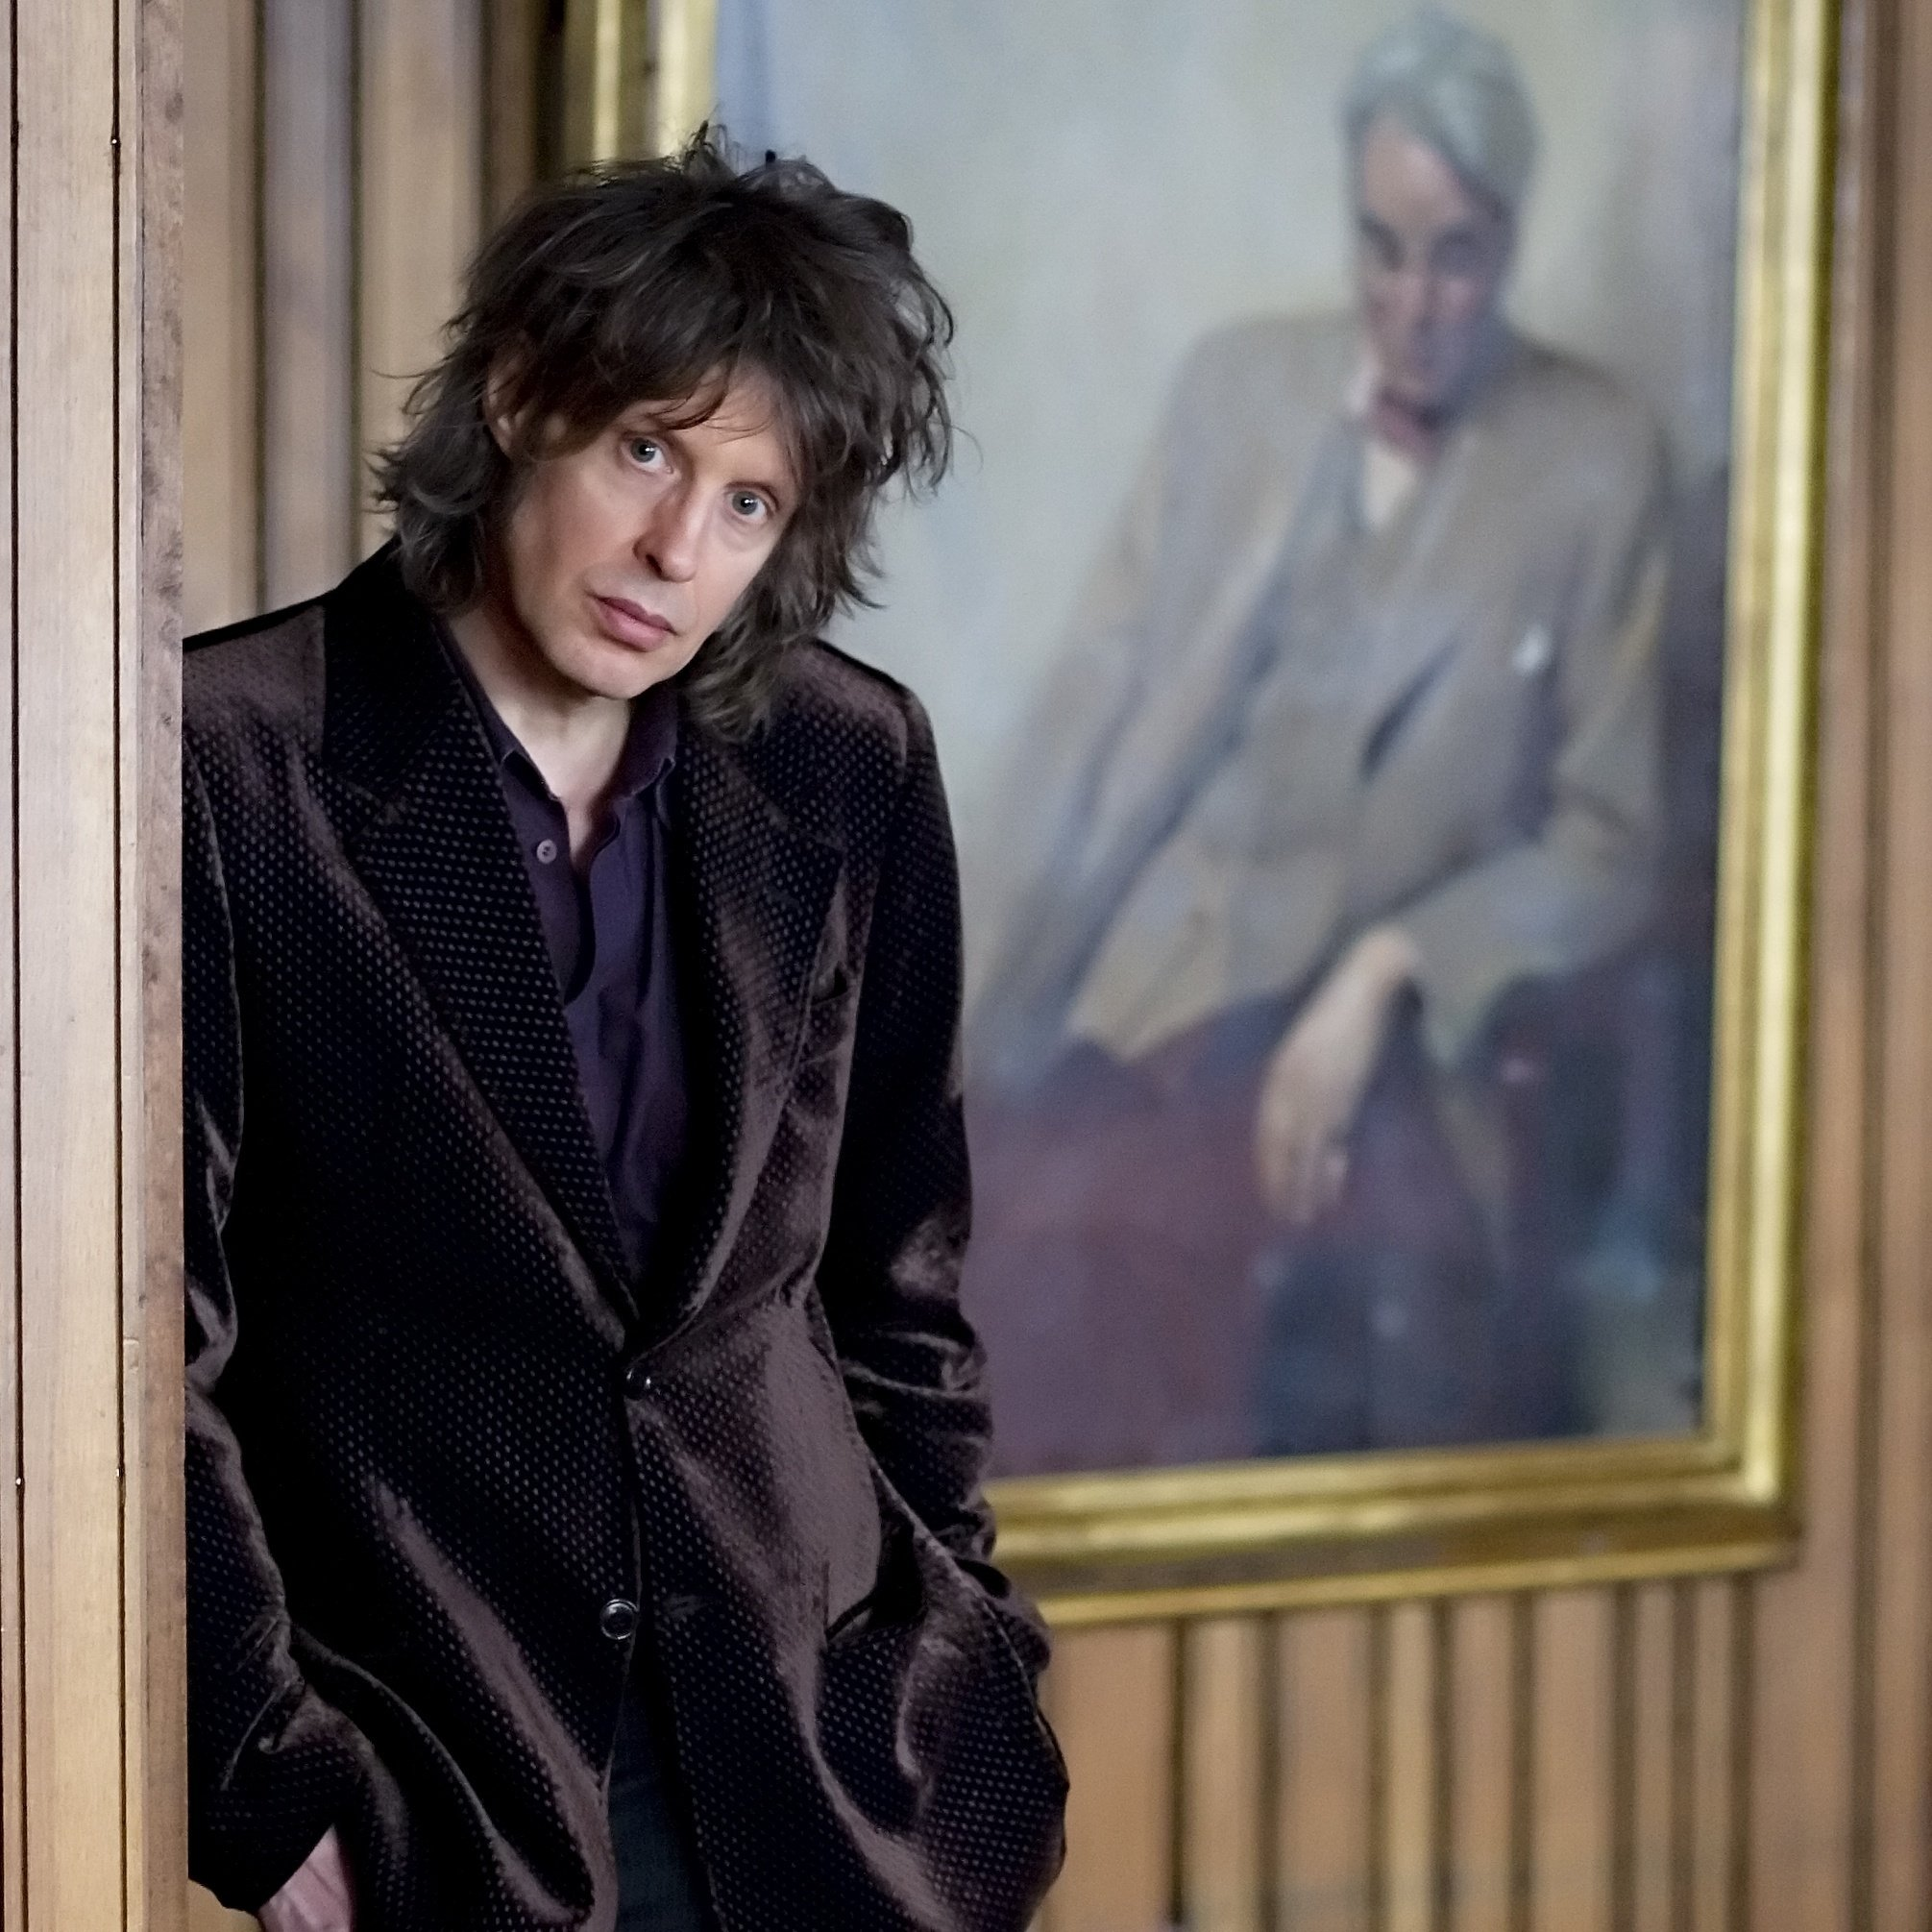 The Waterboys, Fanfarlo, The Wave Pictures y Cass McCombs se suman al Heineken Music Selector